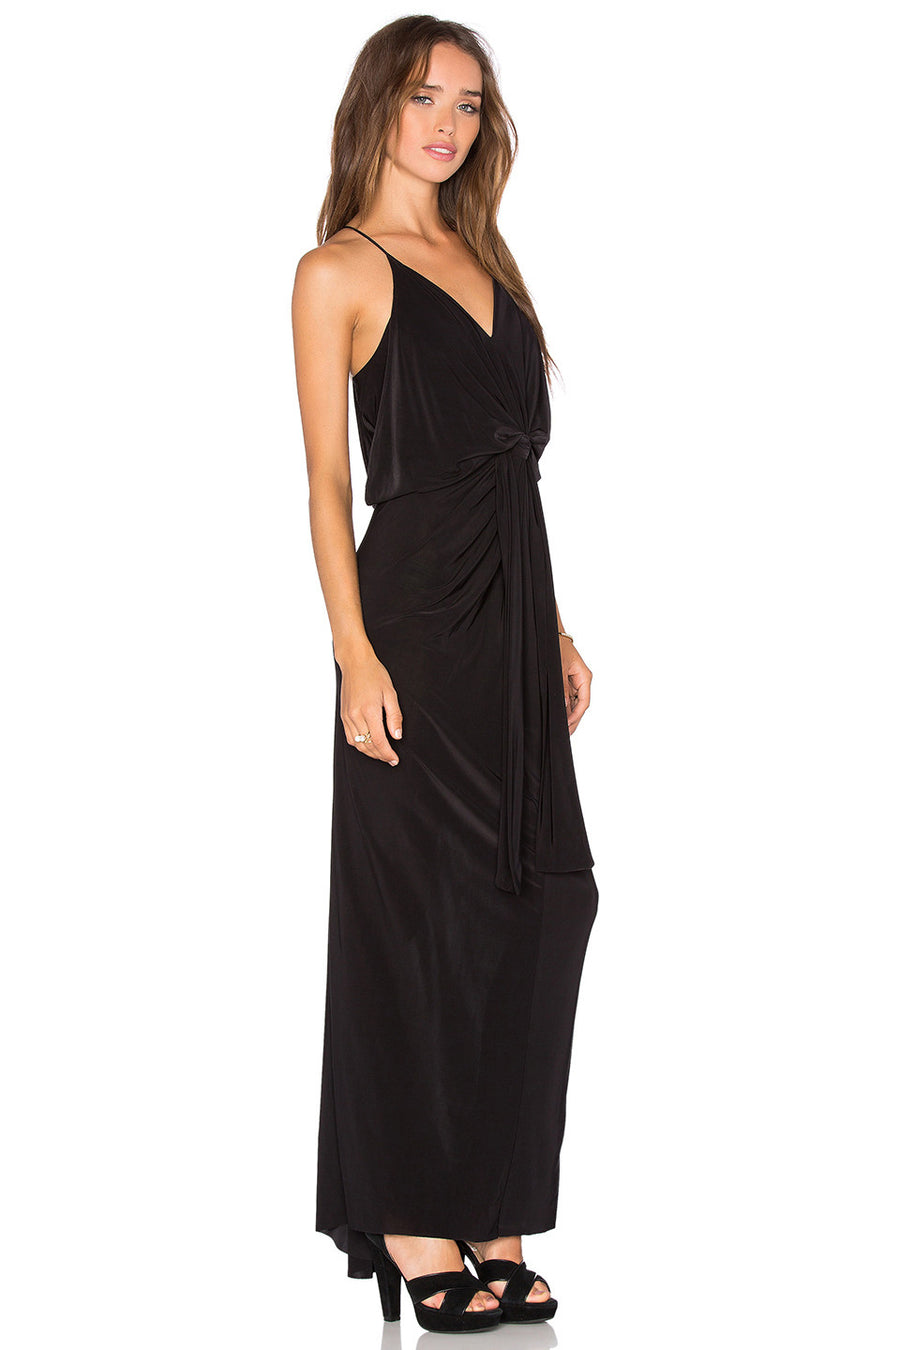 Domino Maxi Dress - Pavilion